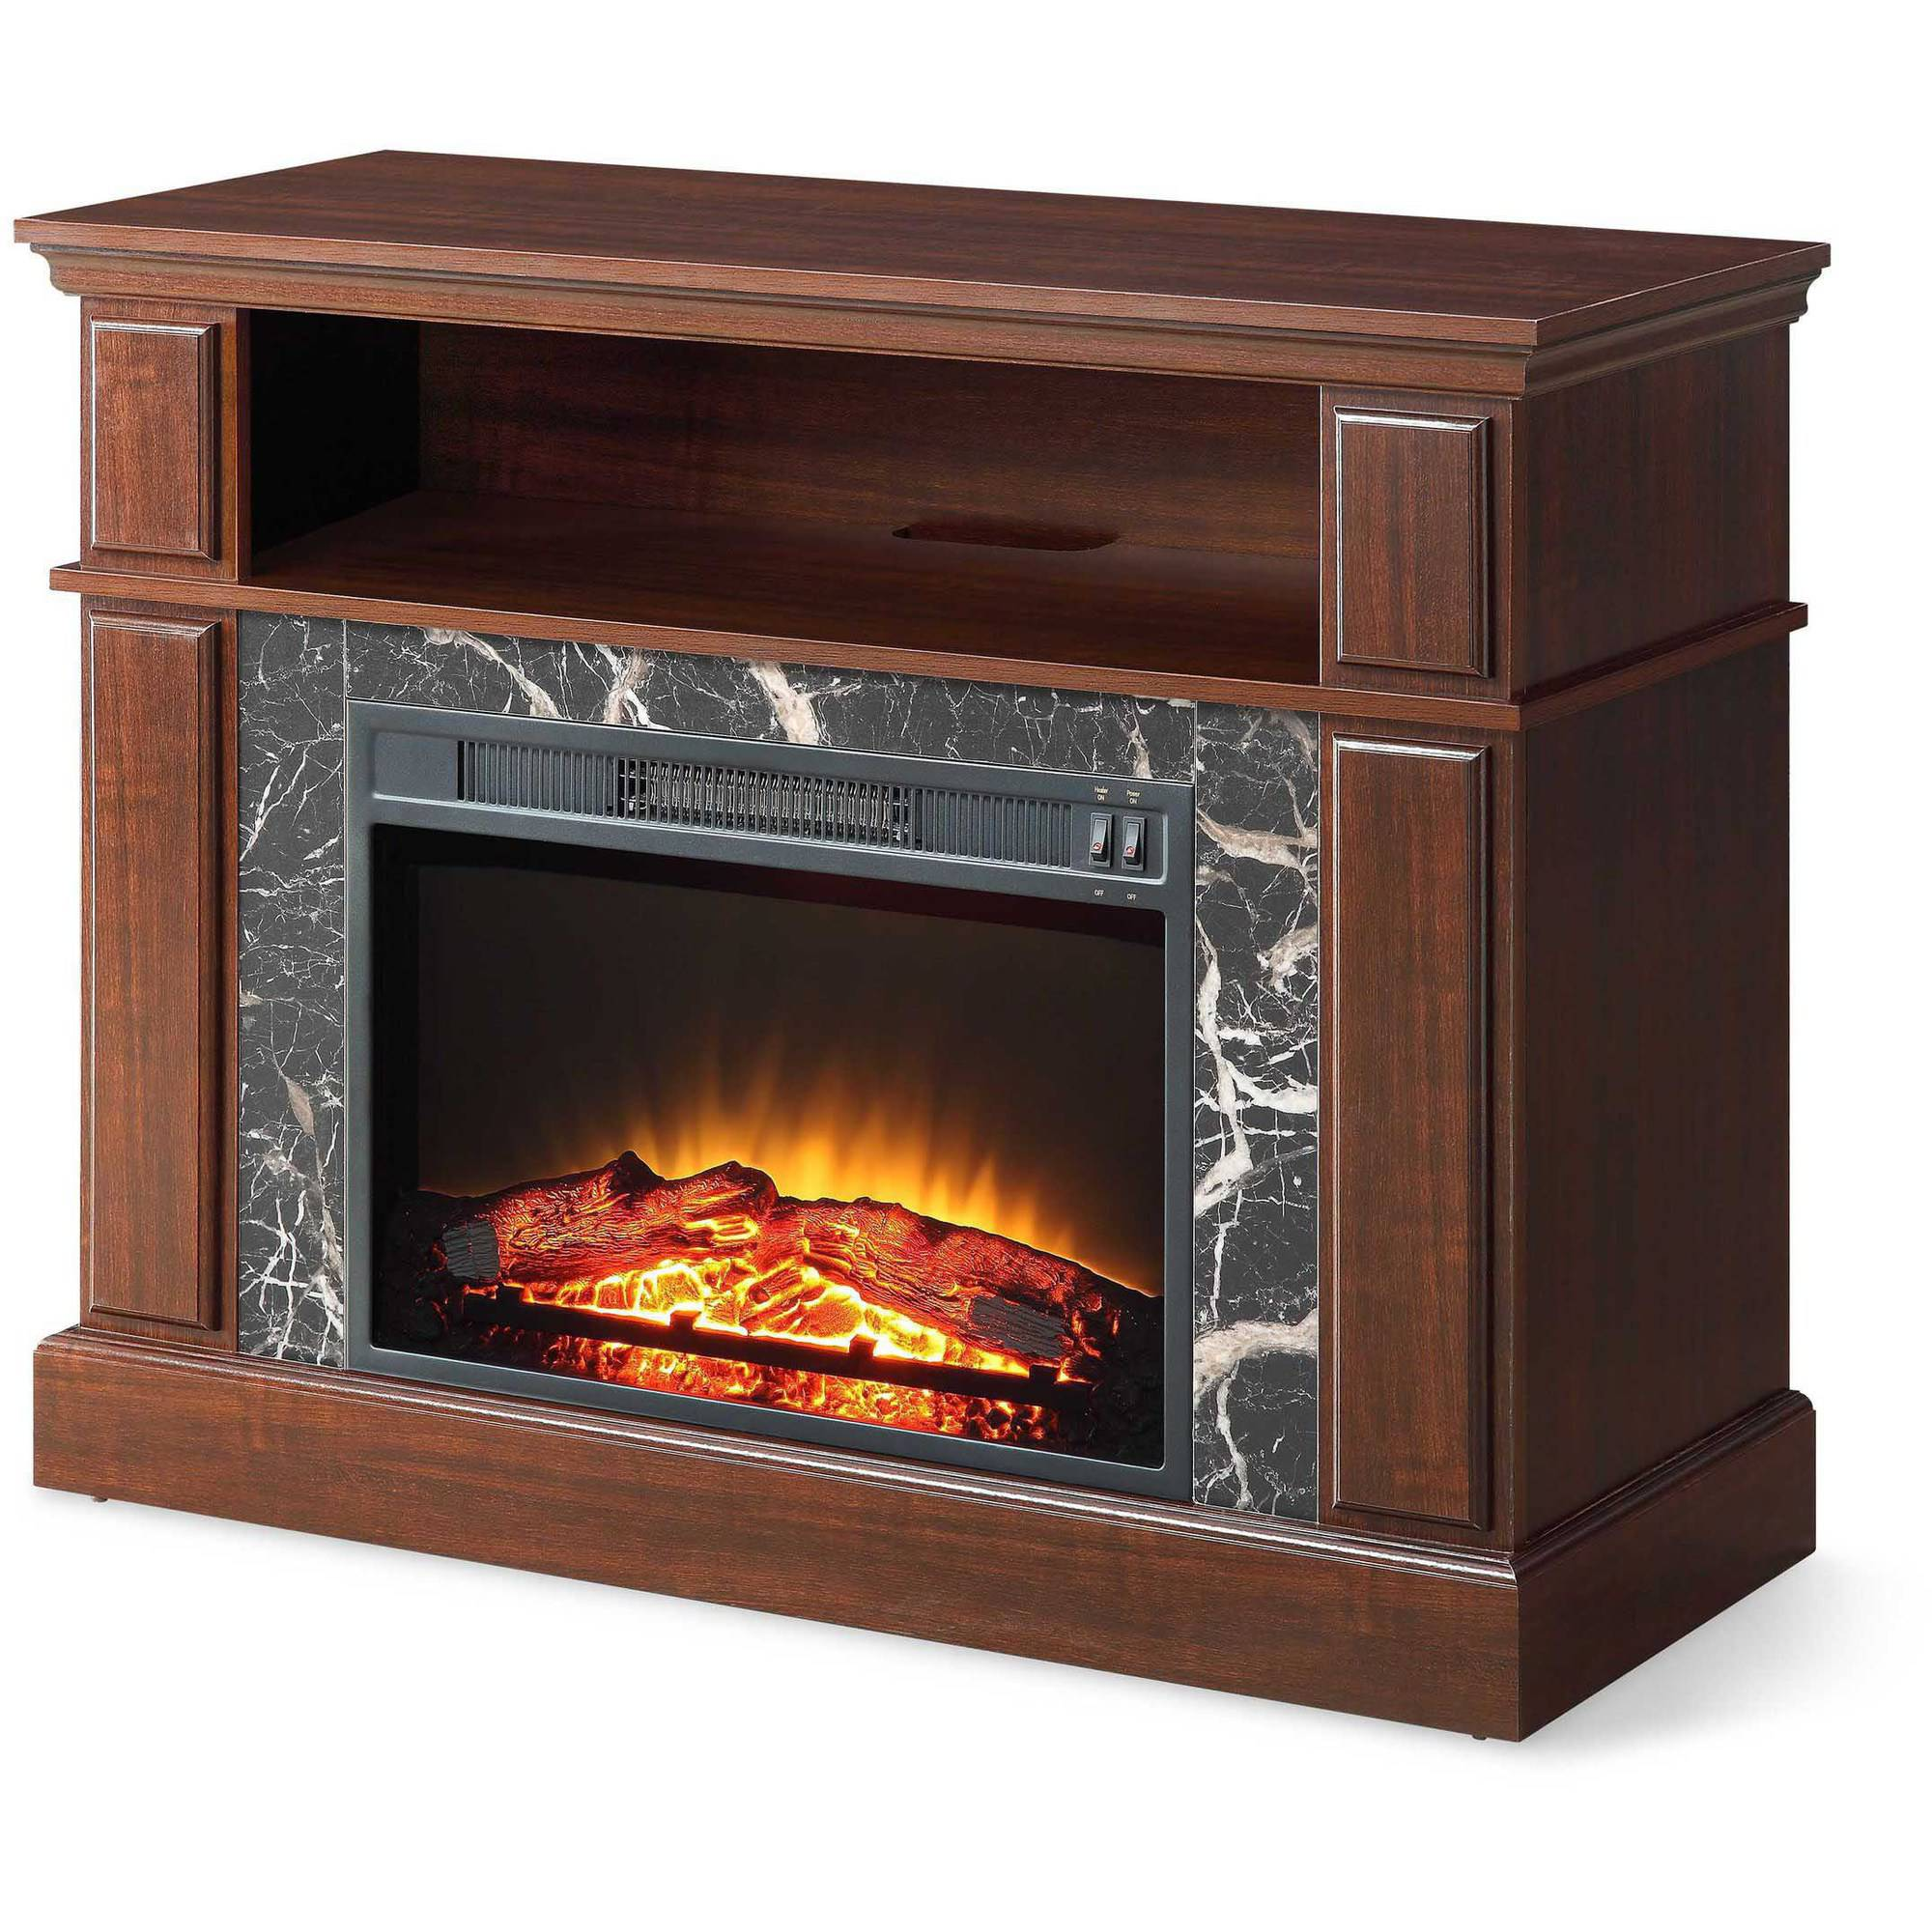 "Free Shipping. Buy Whalen 41"" Cherry Media Fireplace for TVs up to 50"" at Walmart.com"